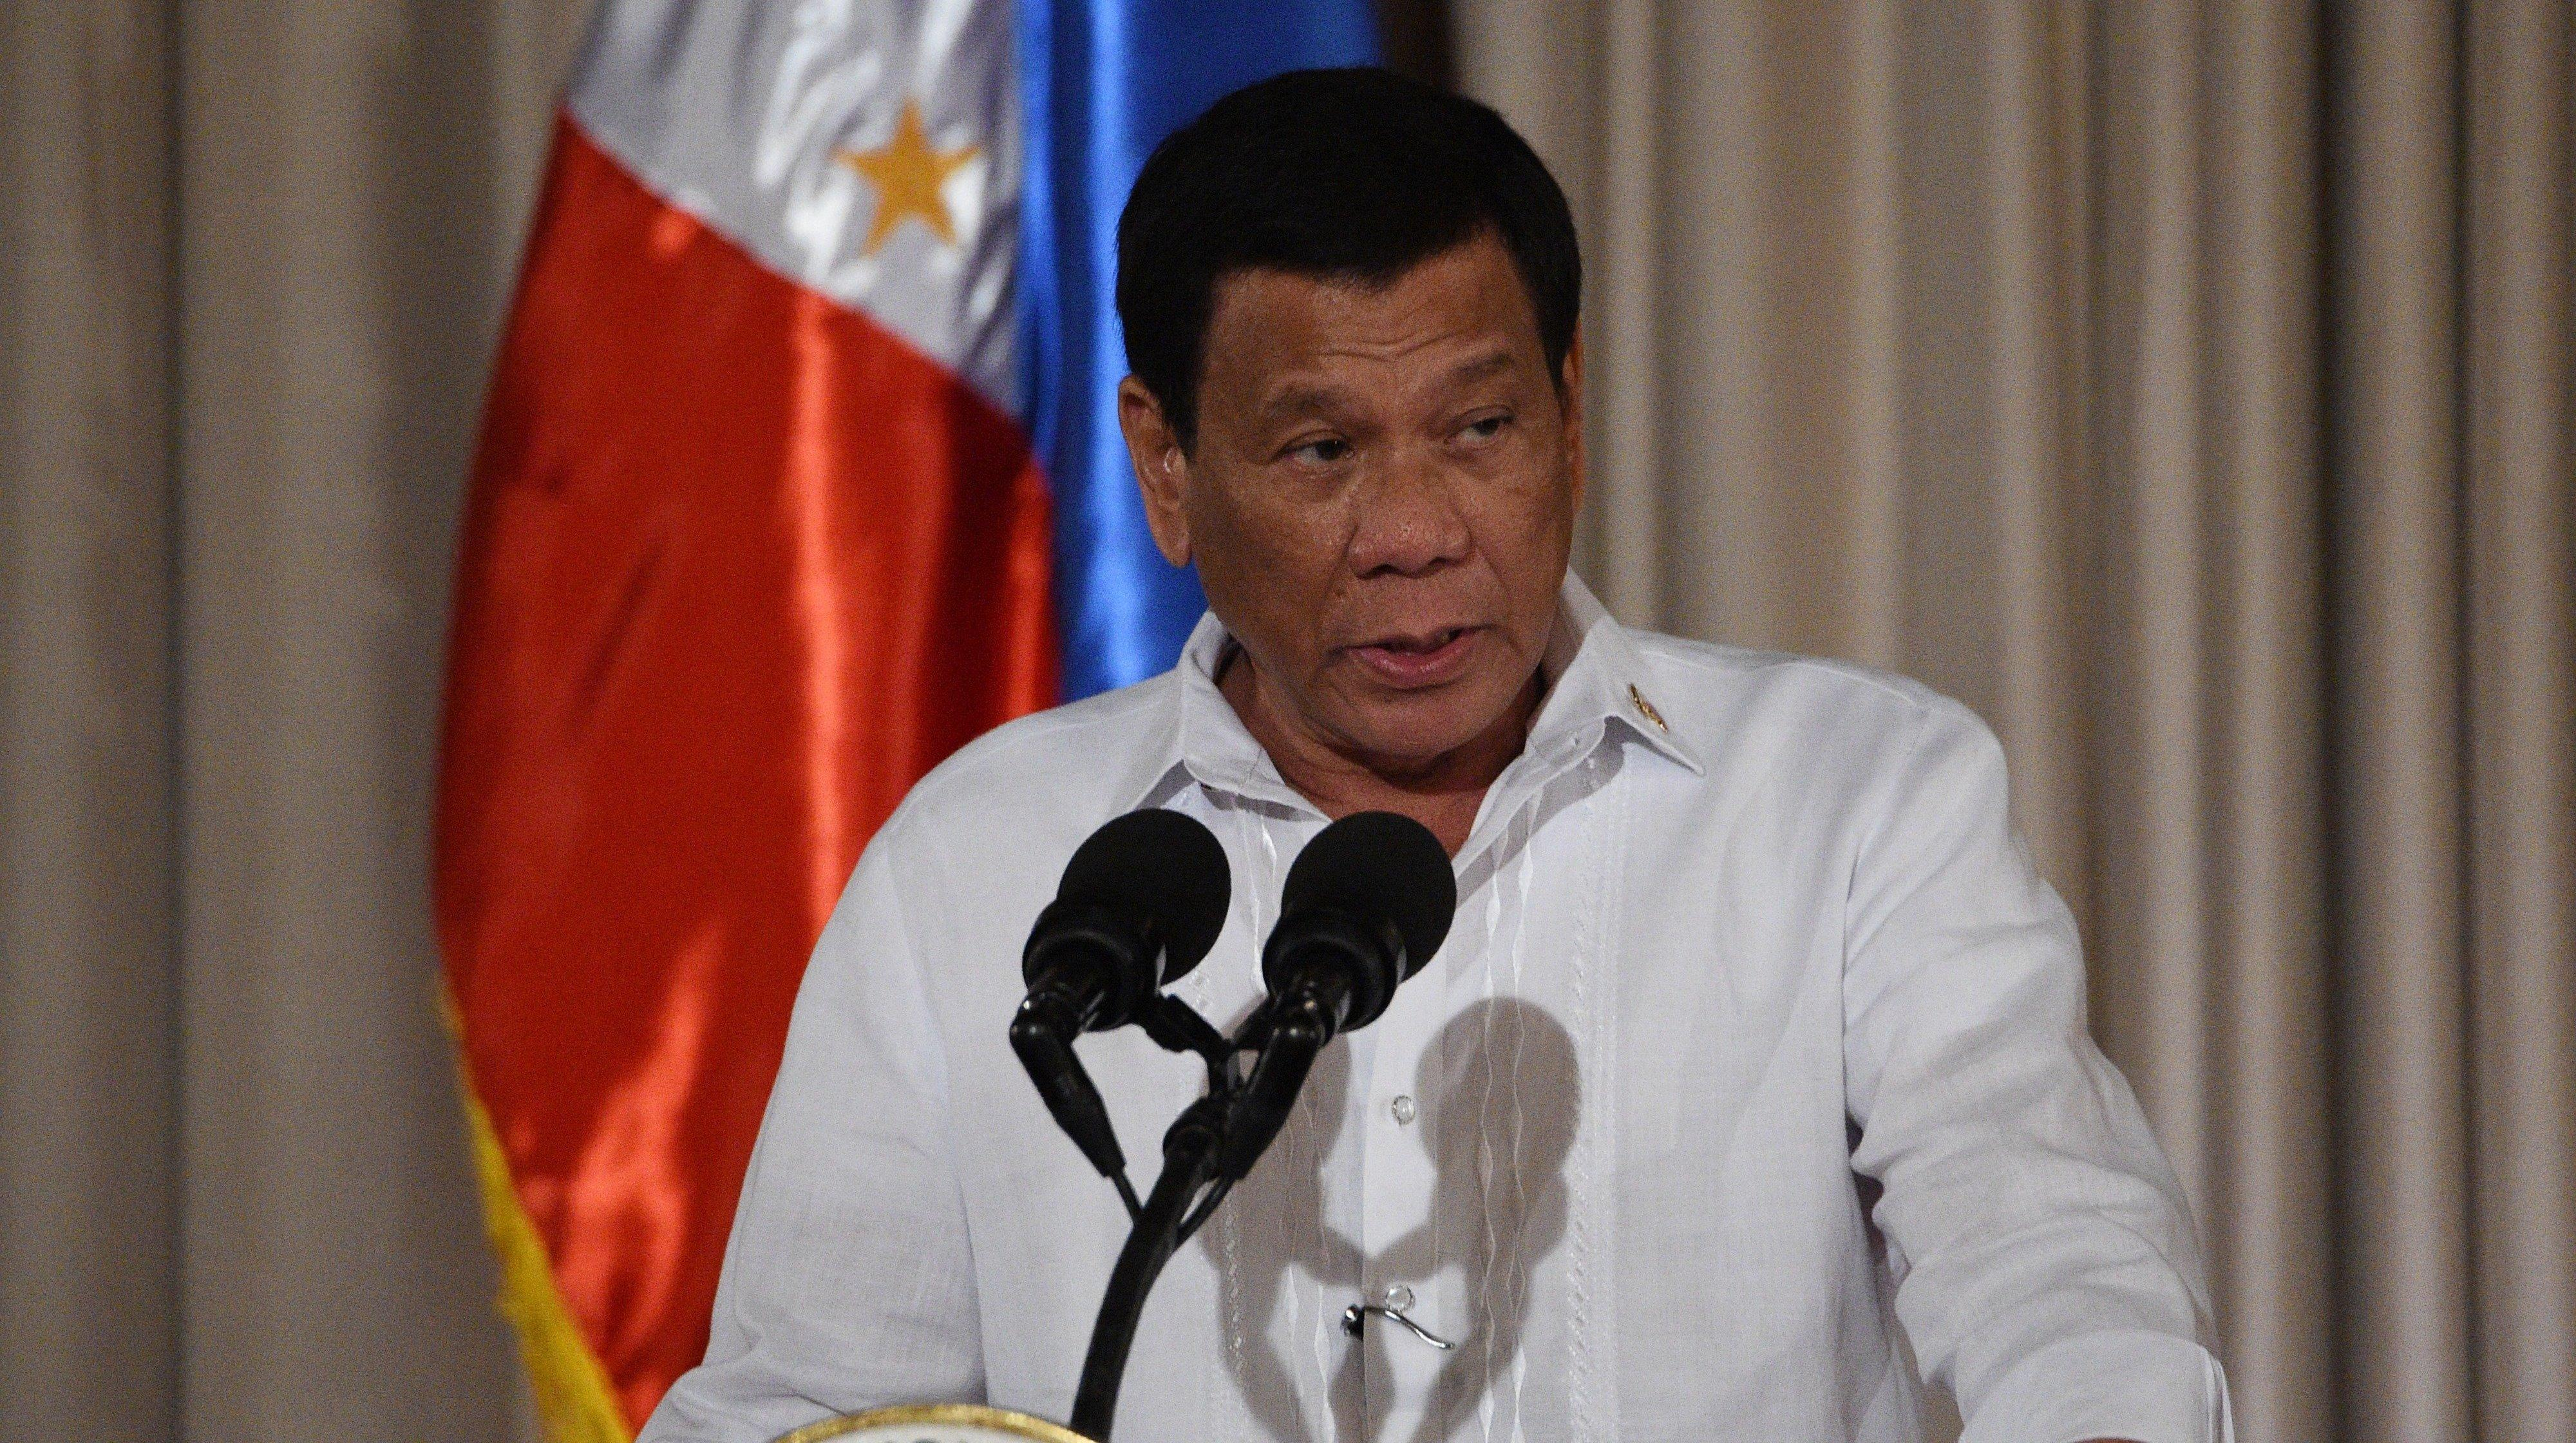 Philippine President Used The Word 'Bitch' To Refer To Women At Gender Equality Event